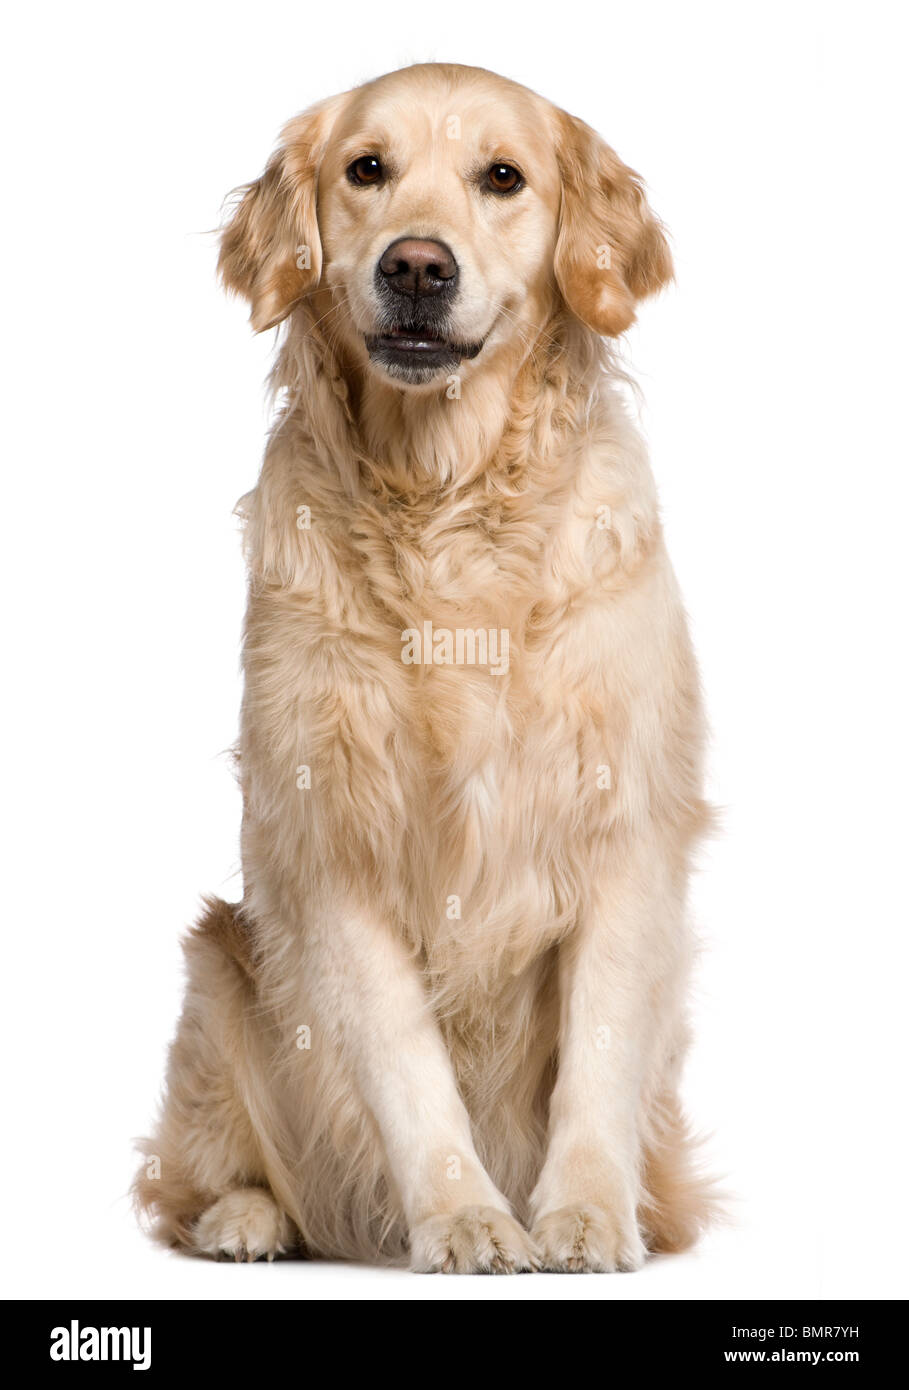 Labrador Retriever, 4 years old, sitting in front of white background - Stock Image